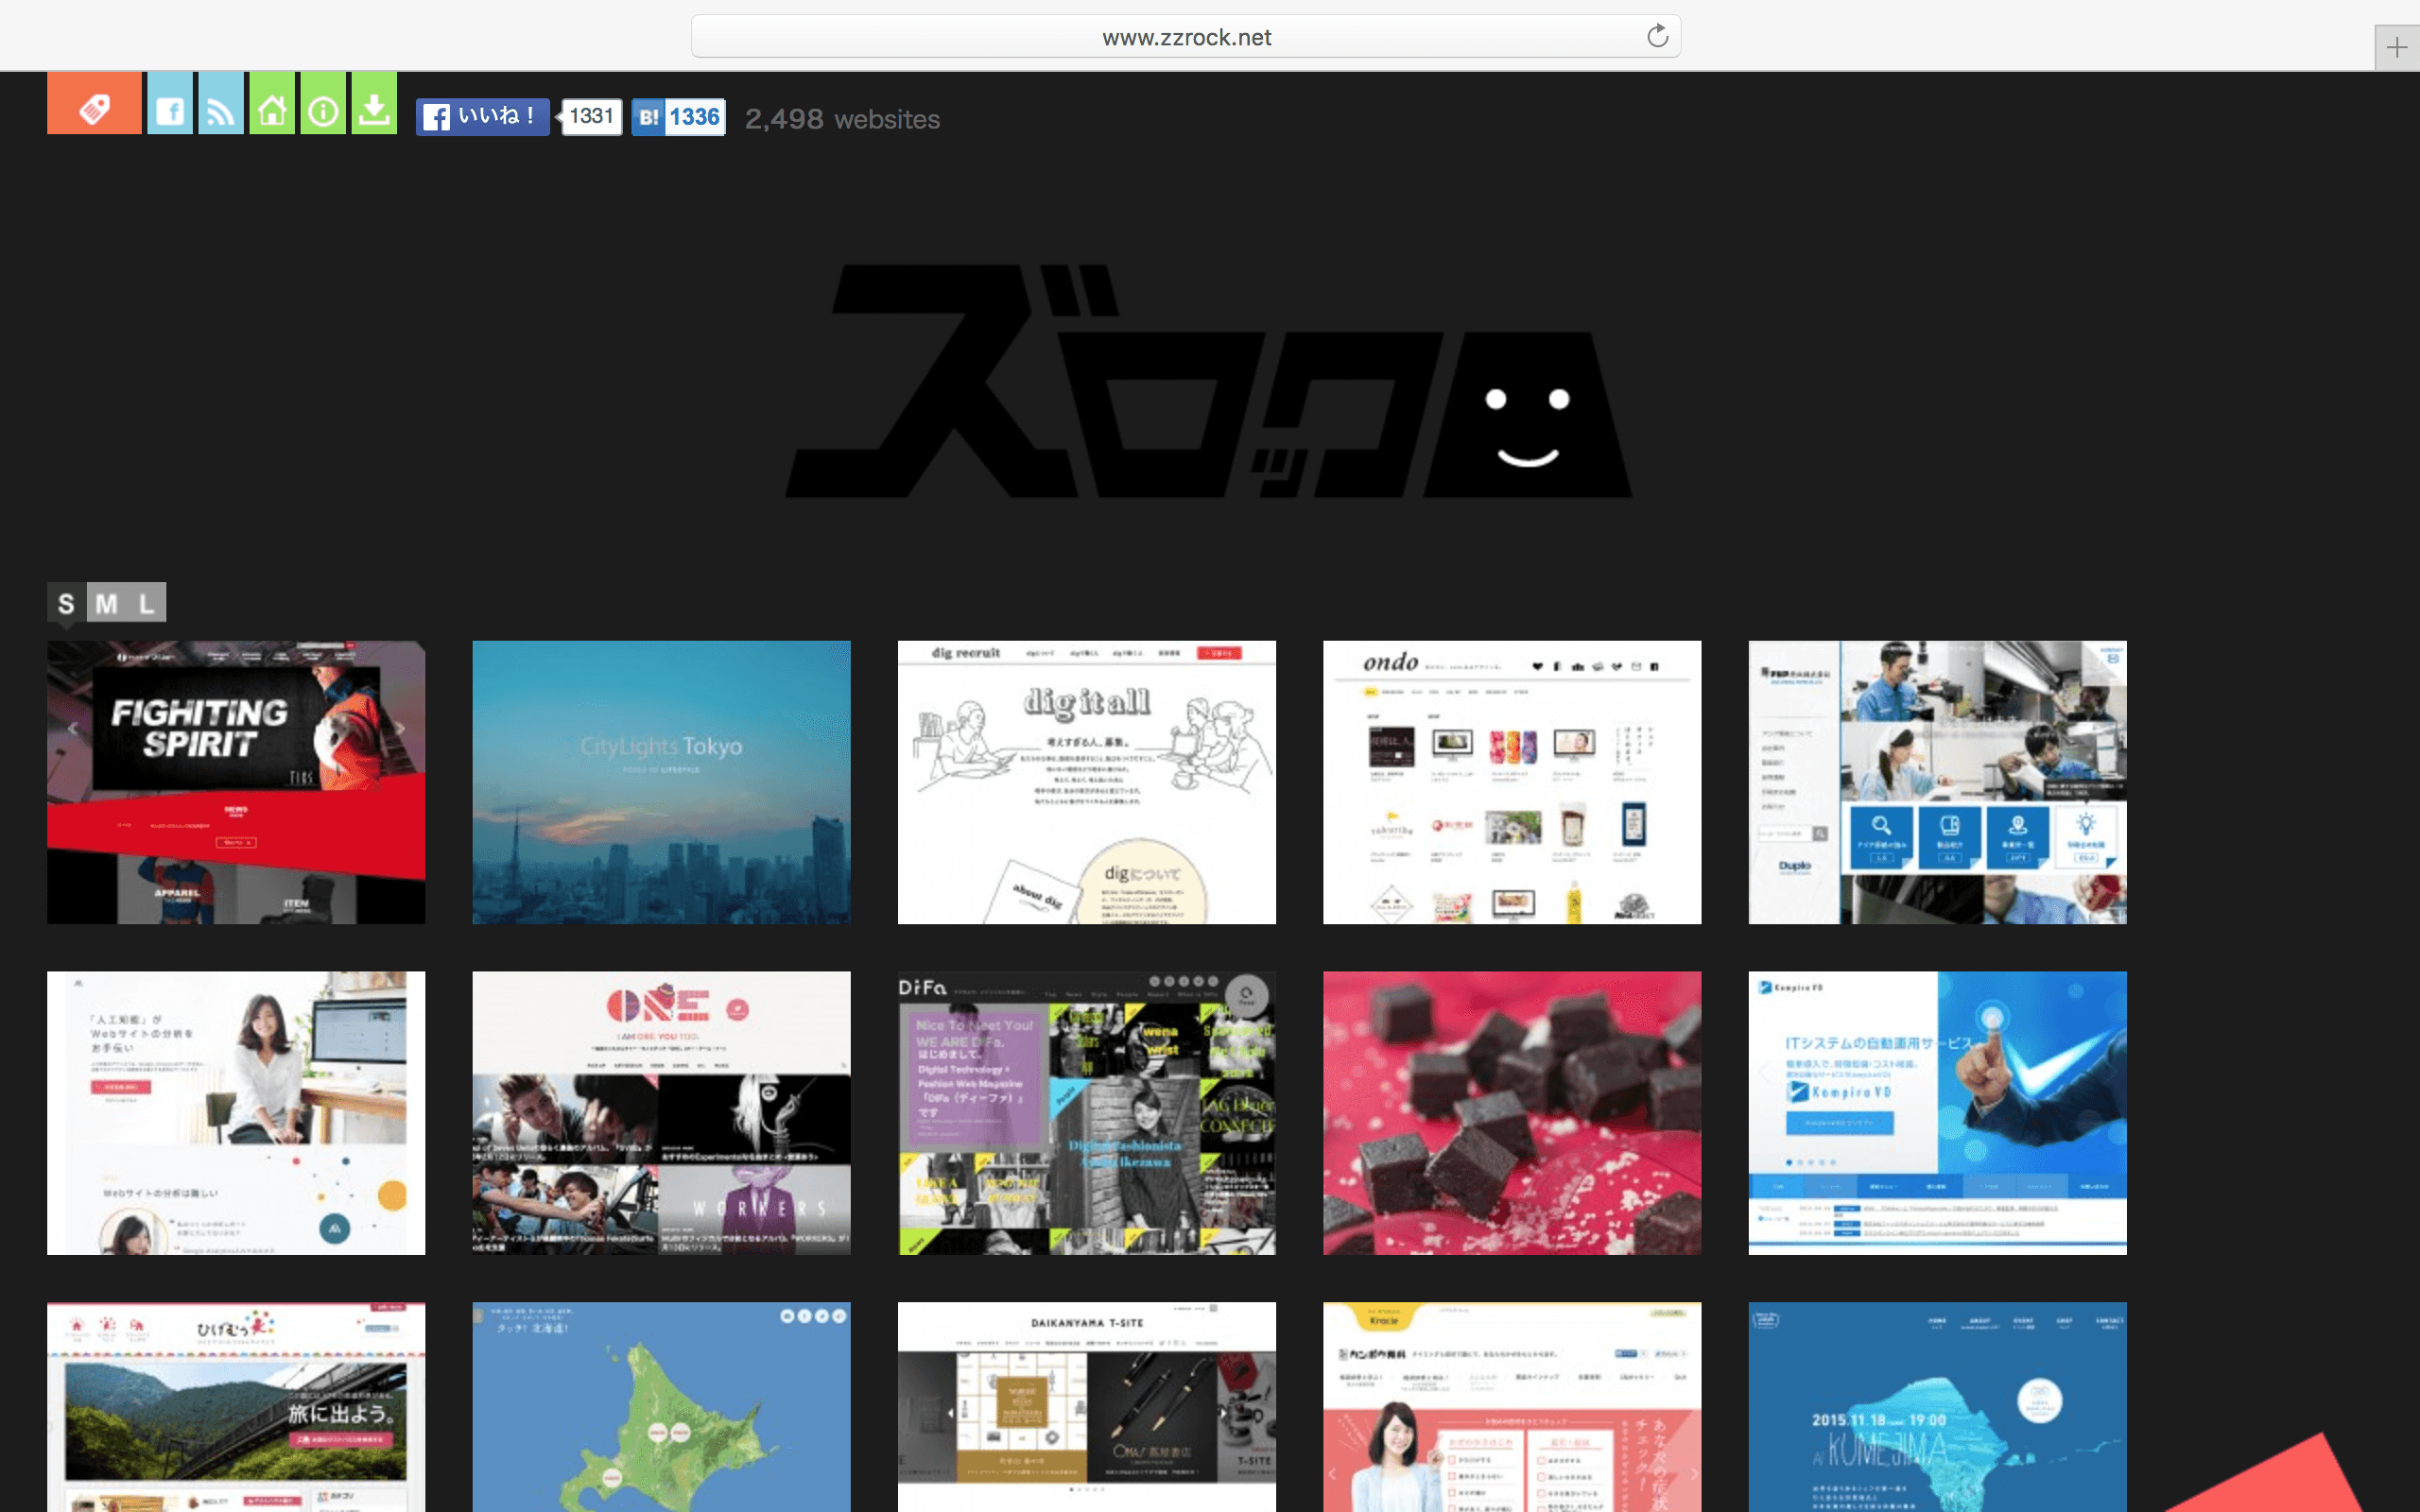 Web Design Gallery : ZZROCK